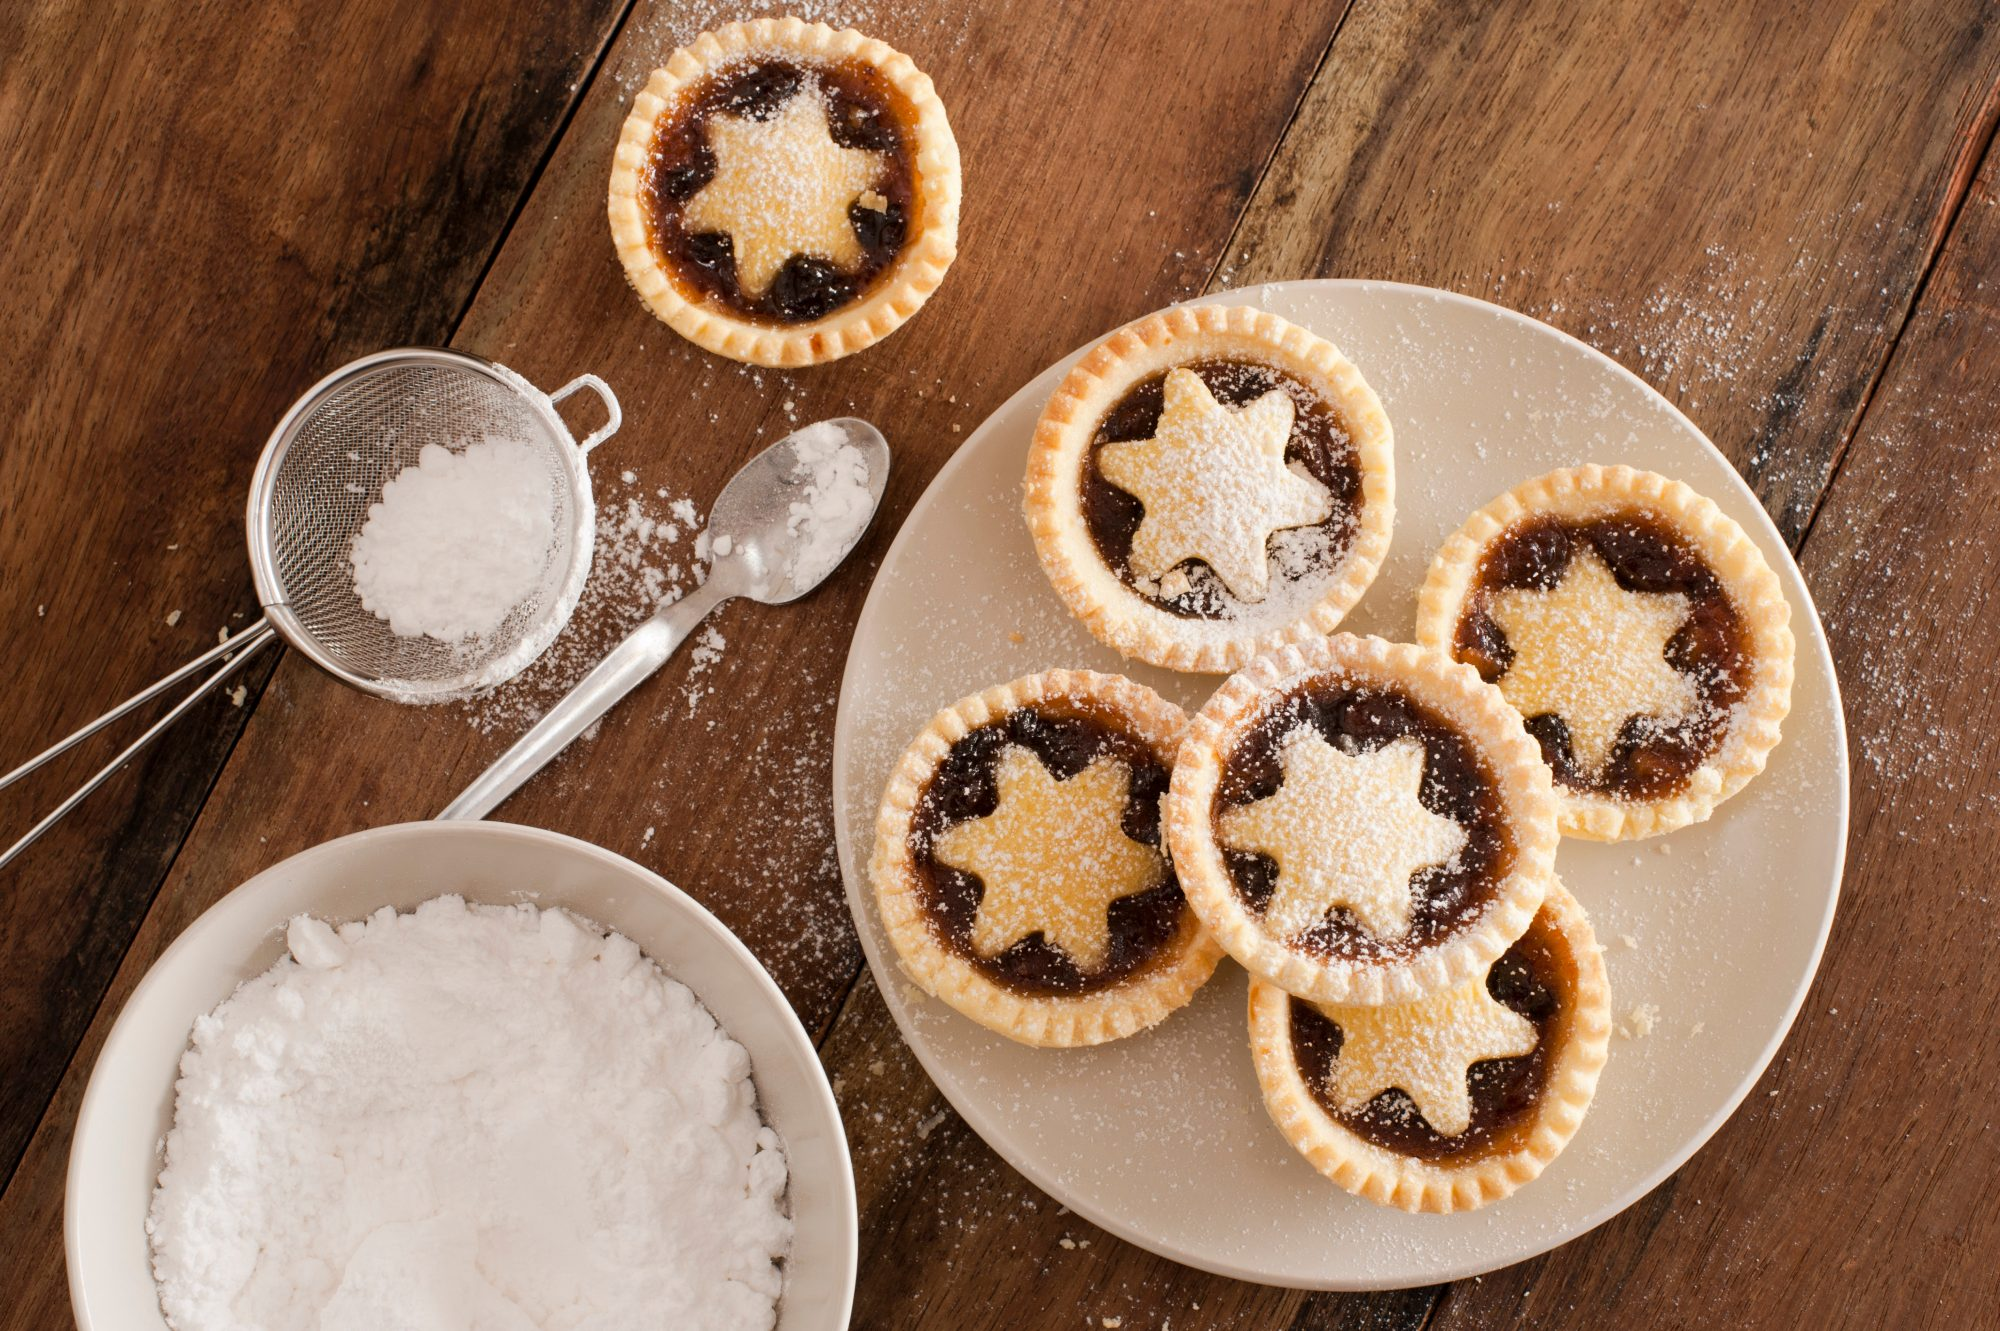 Mince pies plate Getty 7/1/20